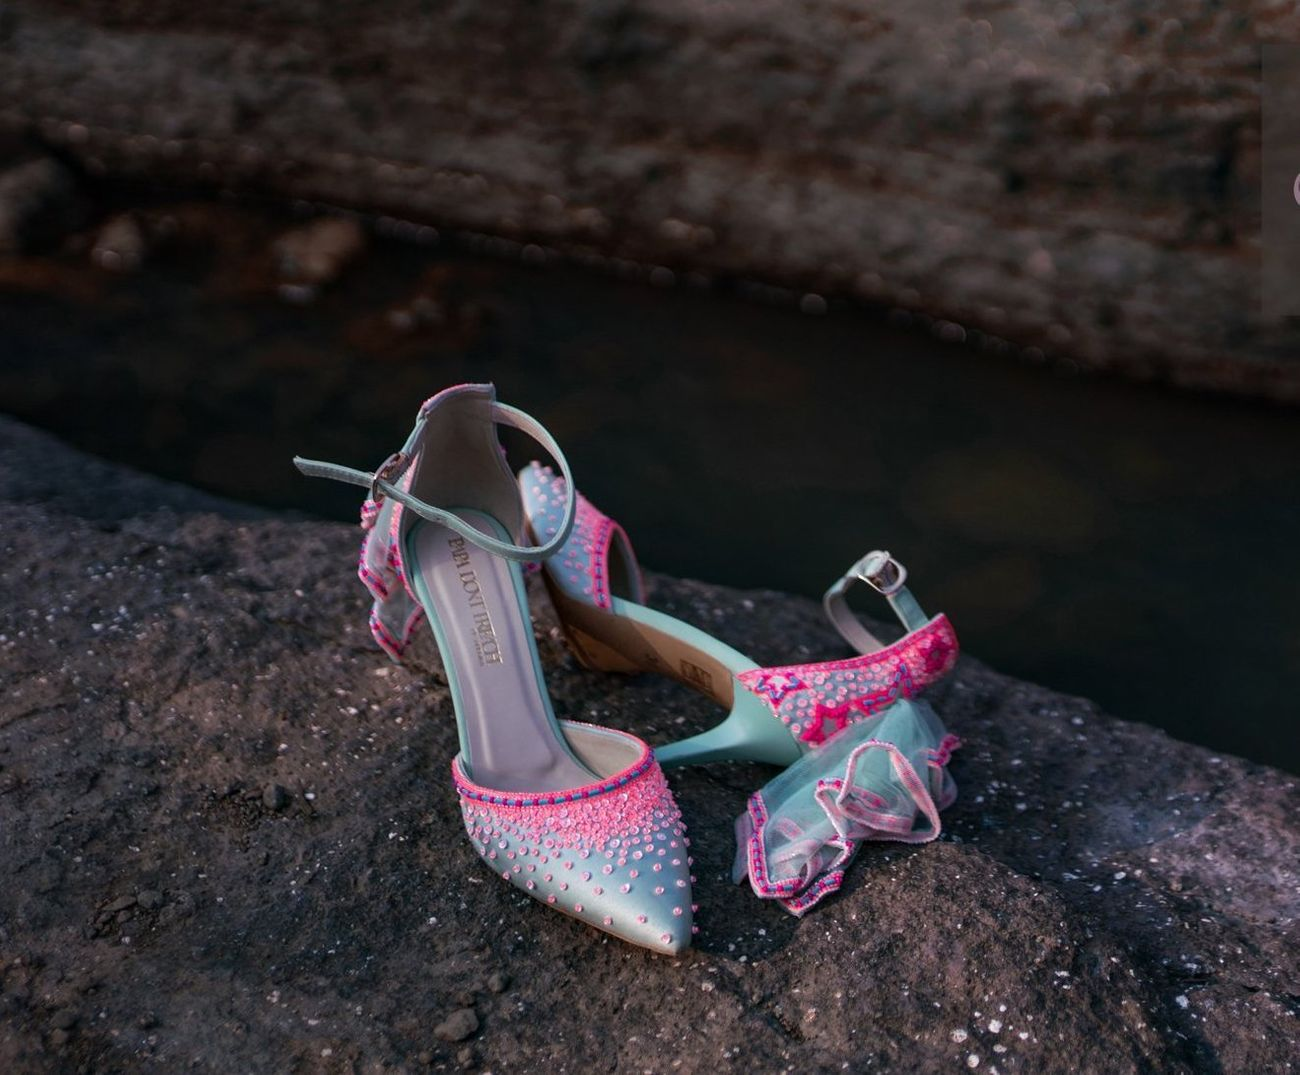 c565140f08 Trending: Wedding Shoes With Little Tutus & Trails! | WedMeGood